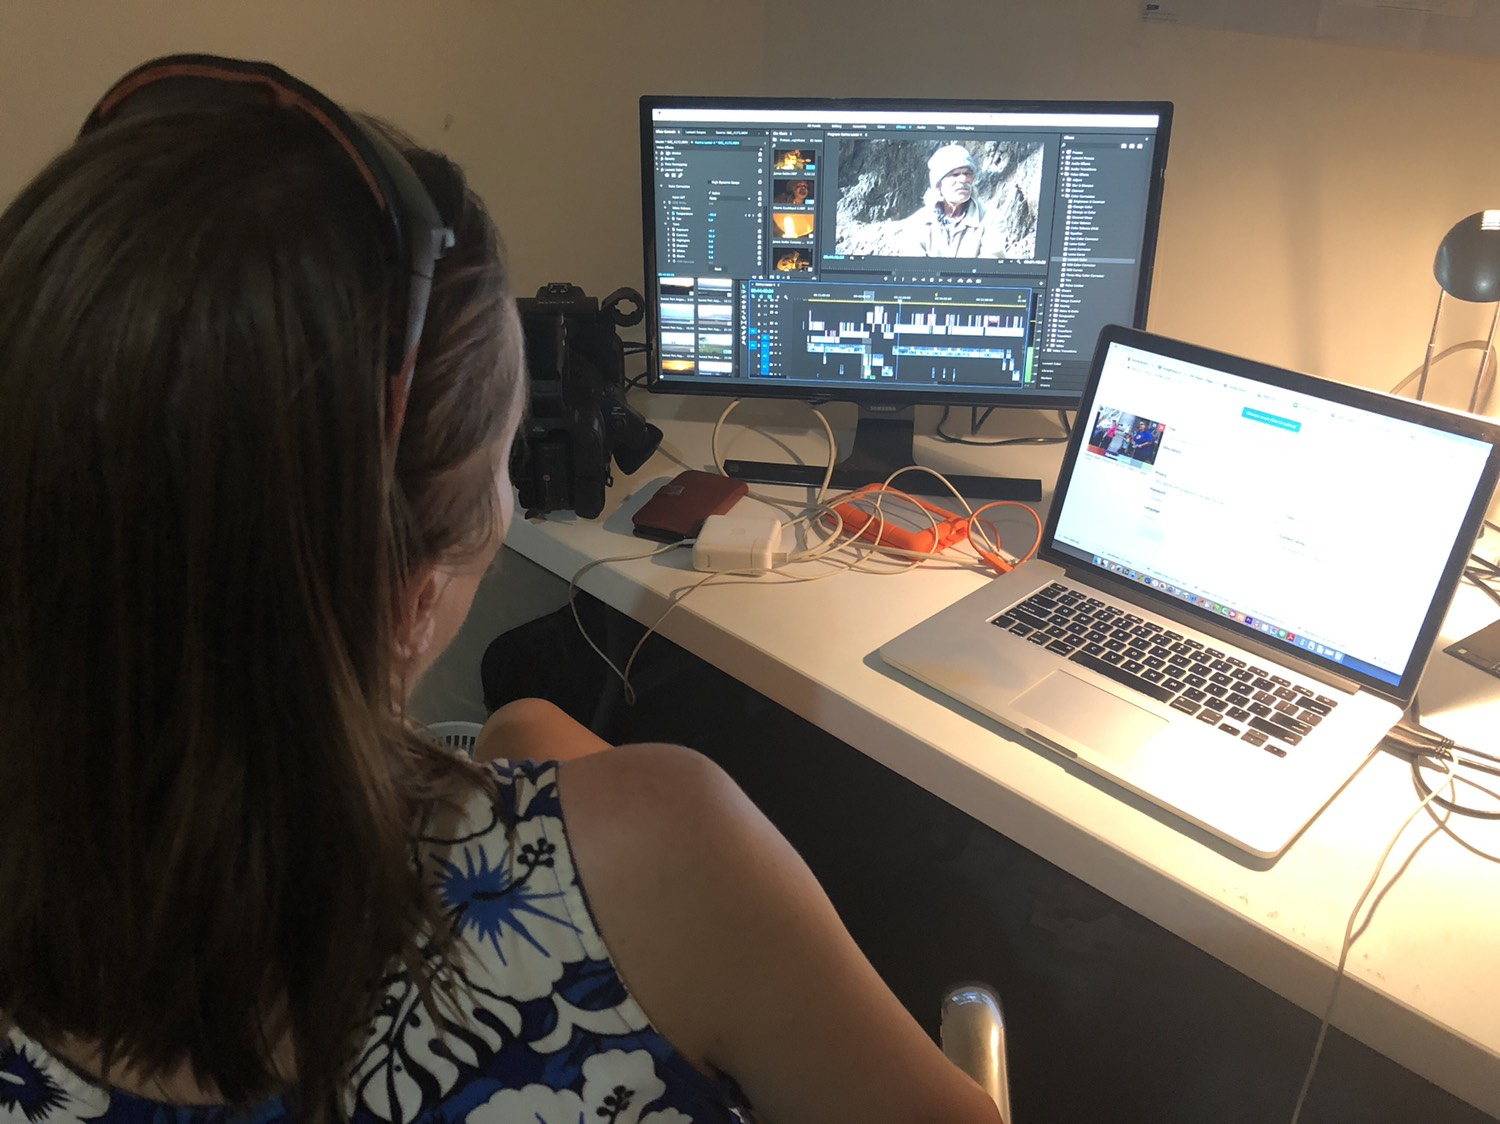 Magali working on the film edit using Adobe Premier